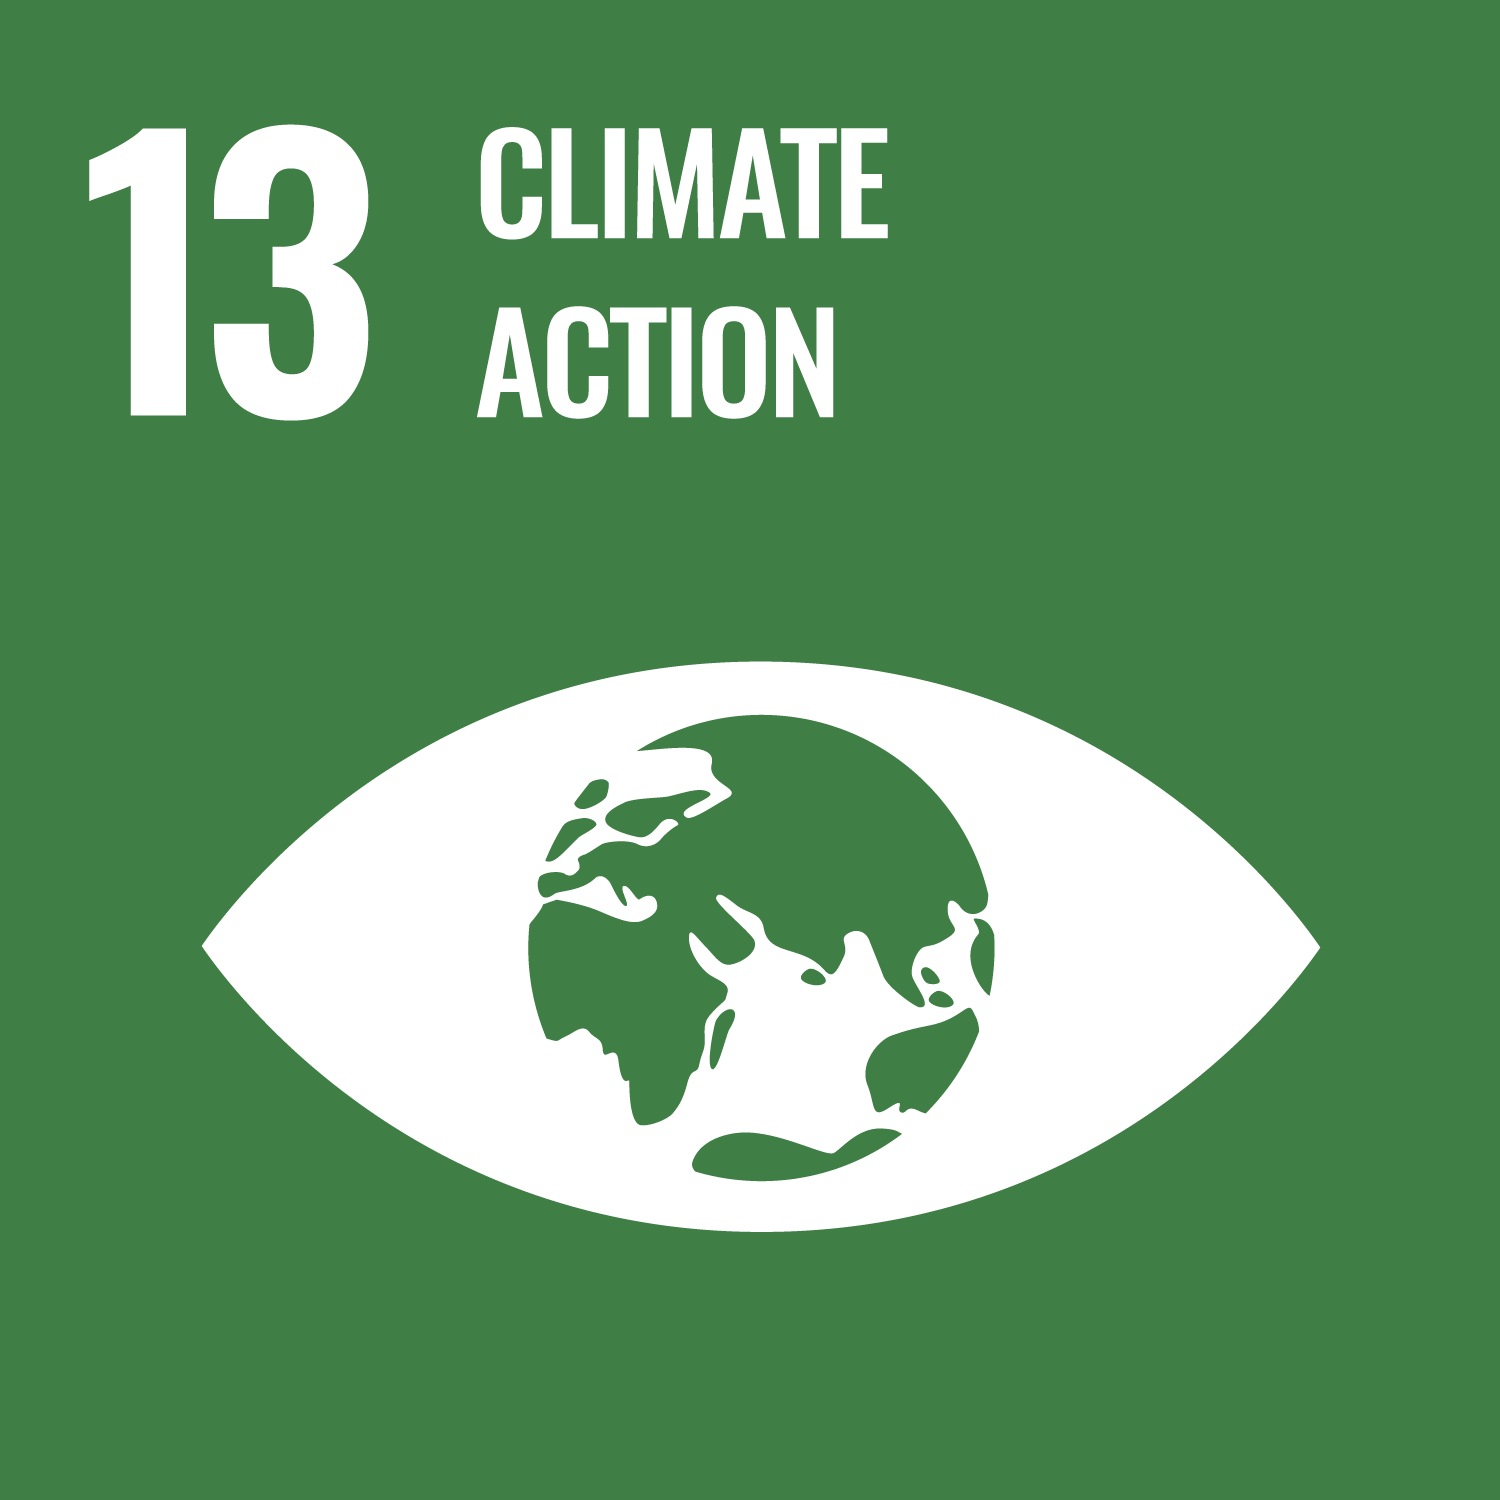 Icon for UN sustainable development goal 13 - Climate Action